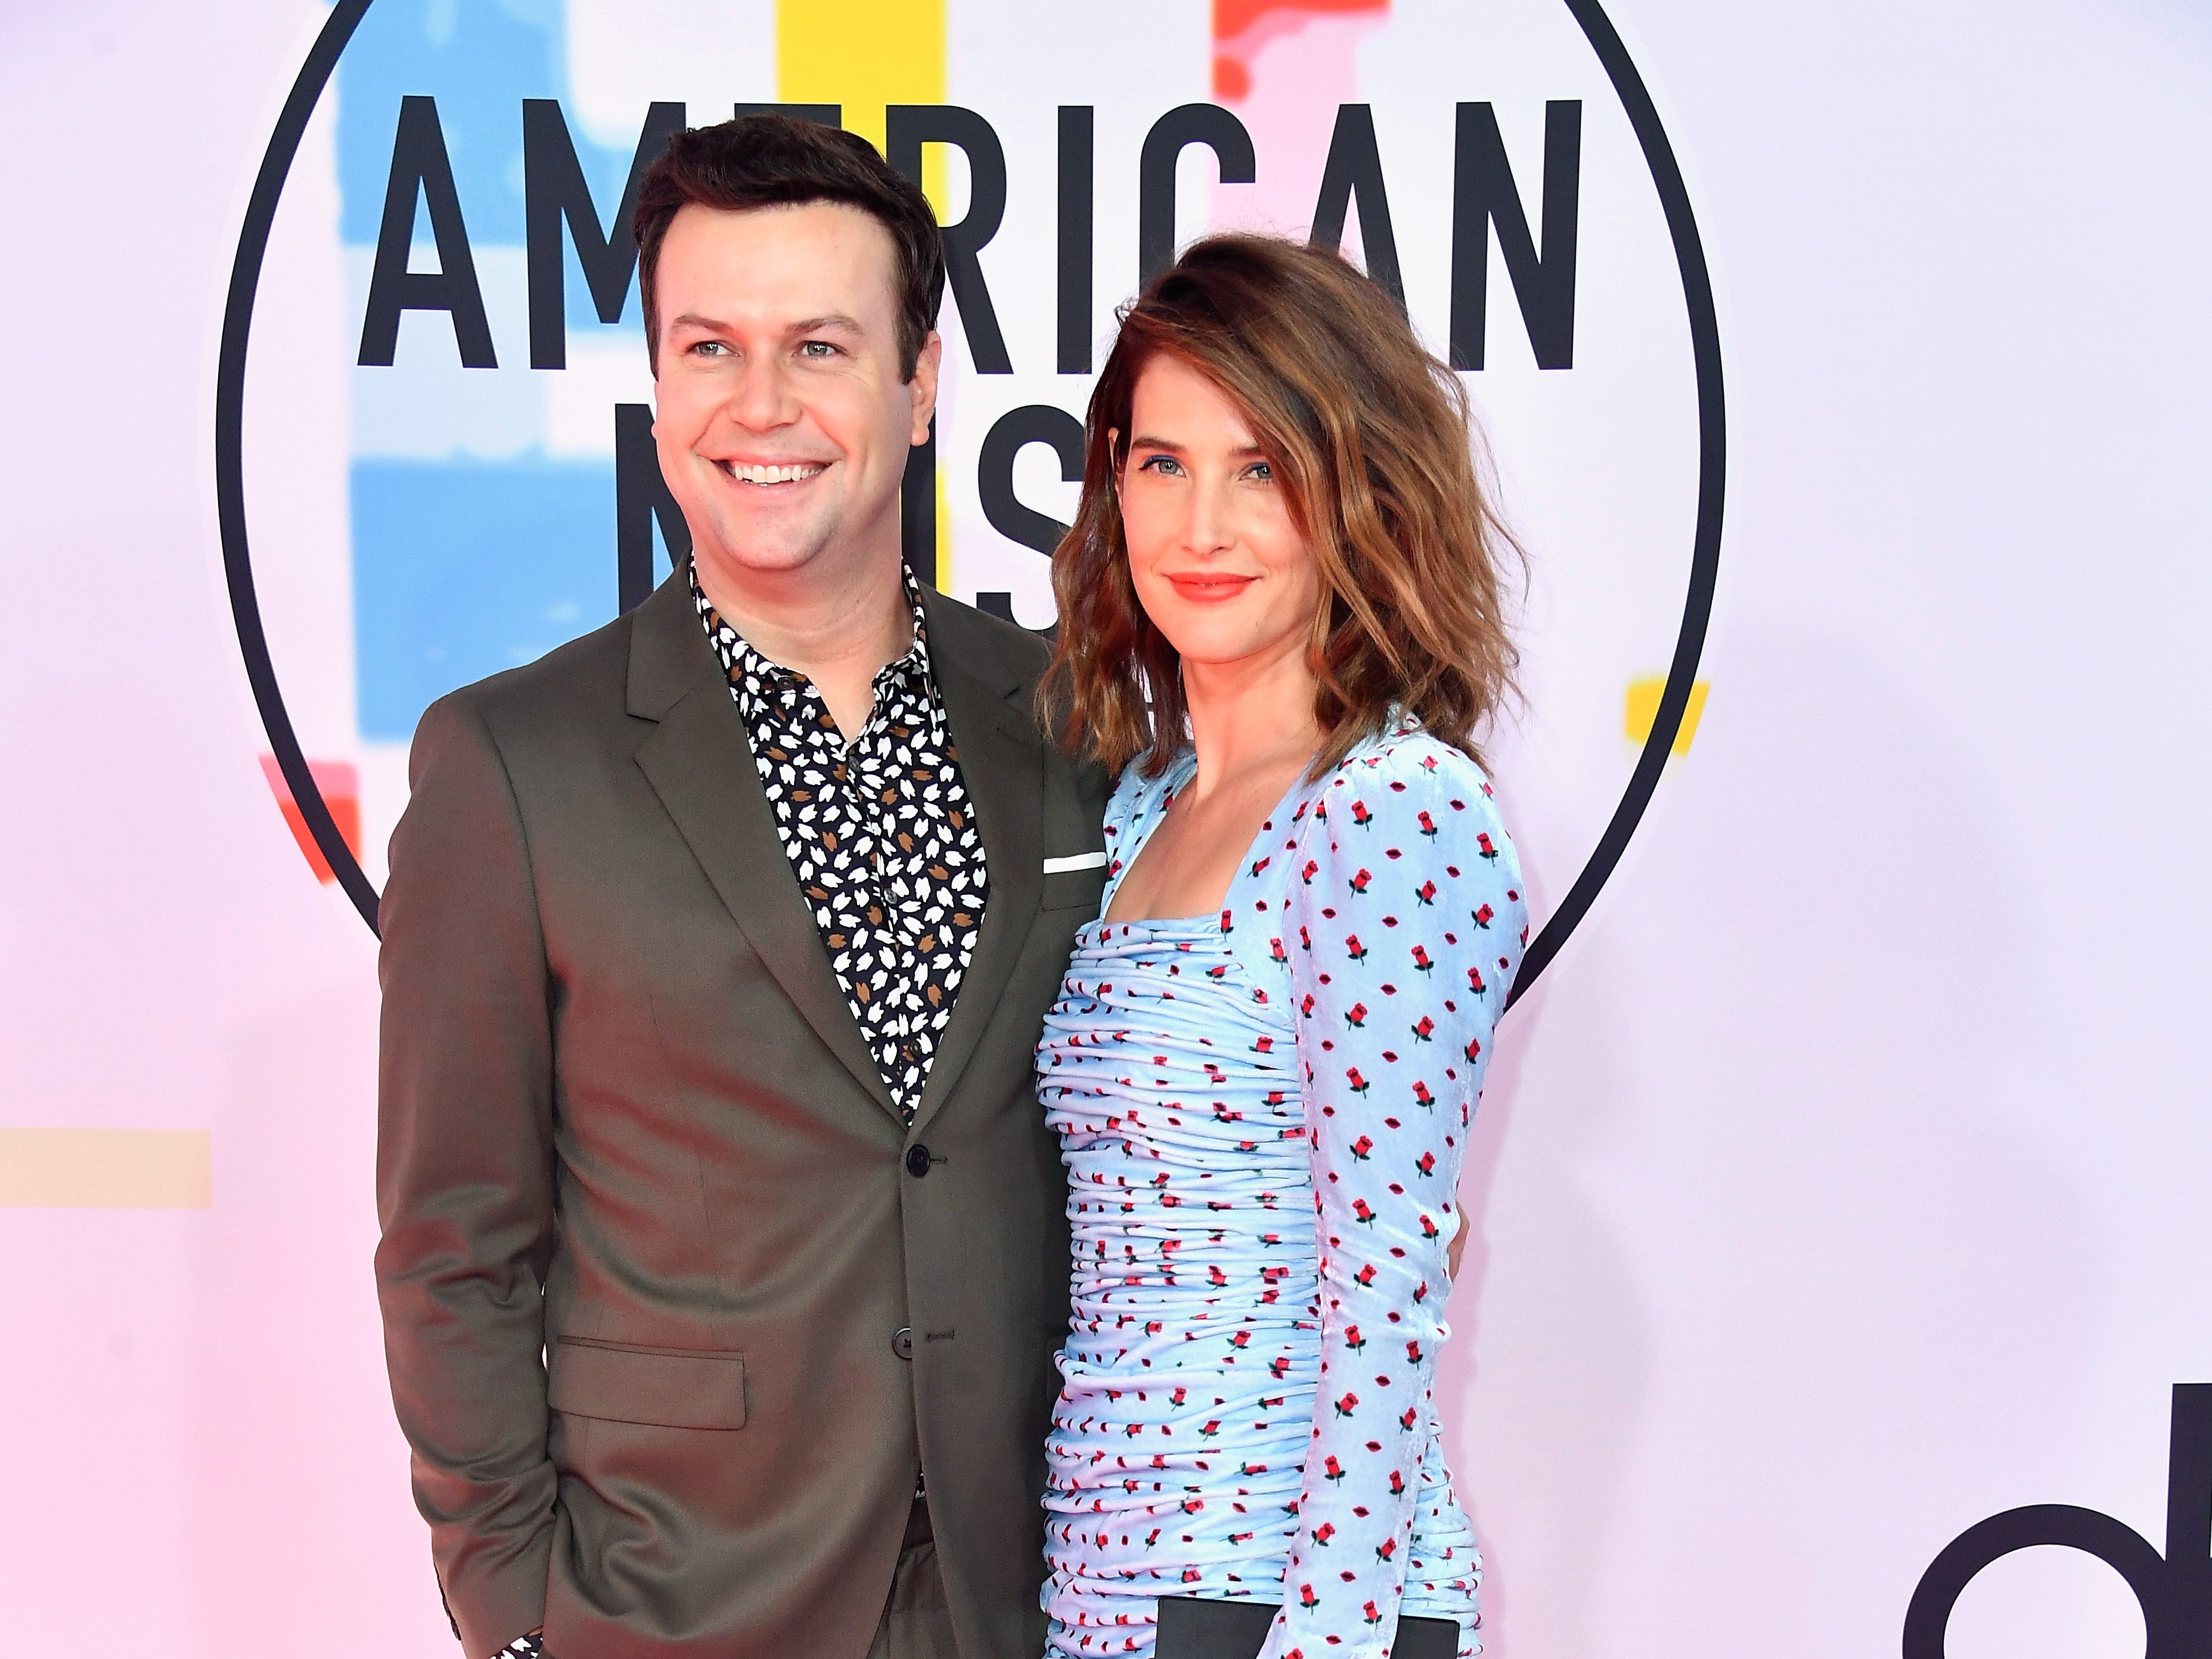 Taran Killam, left, and Cobie Smulders